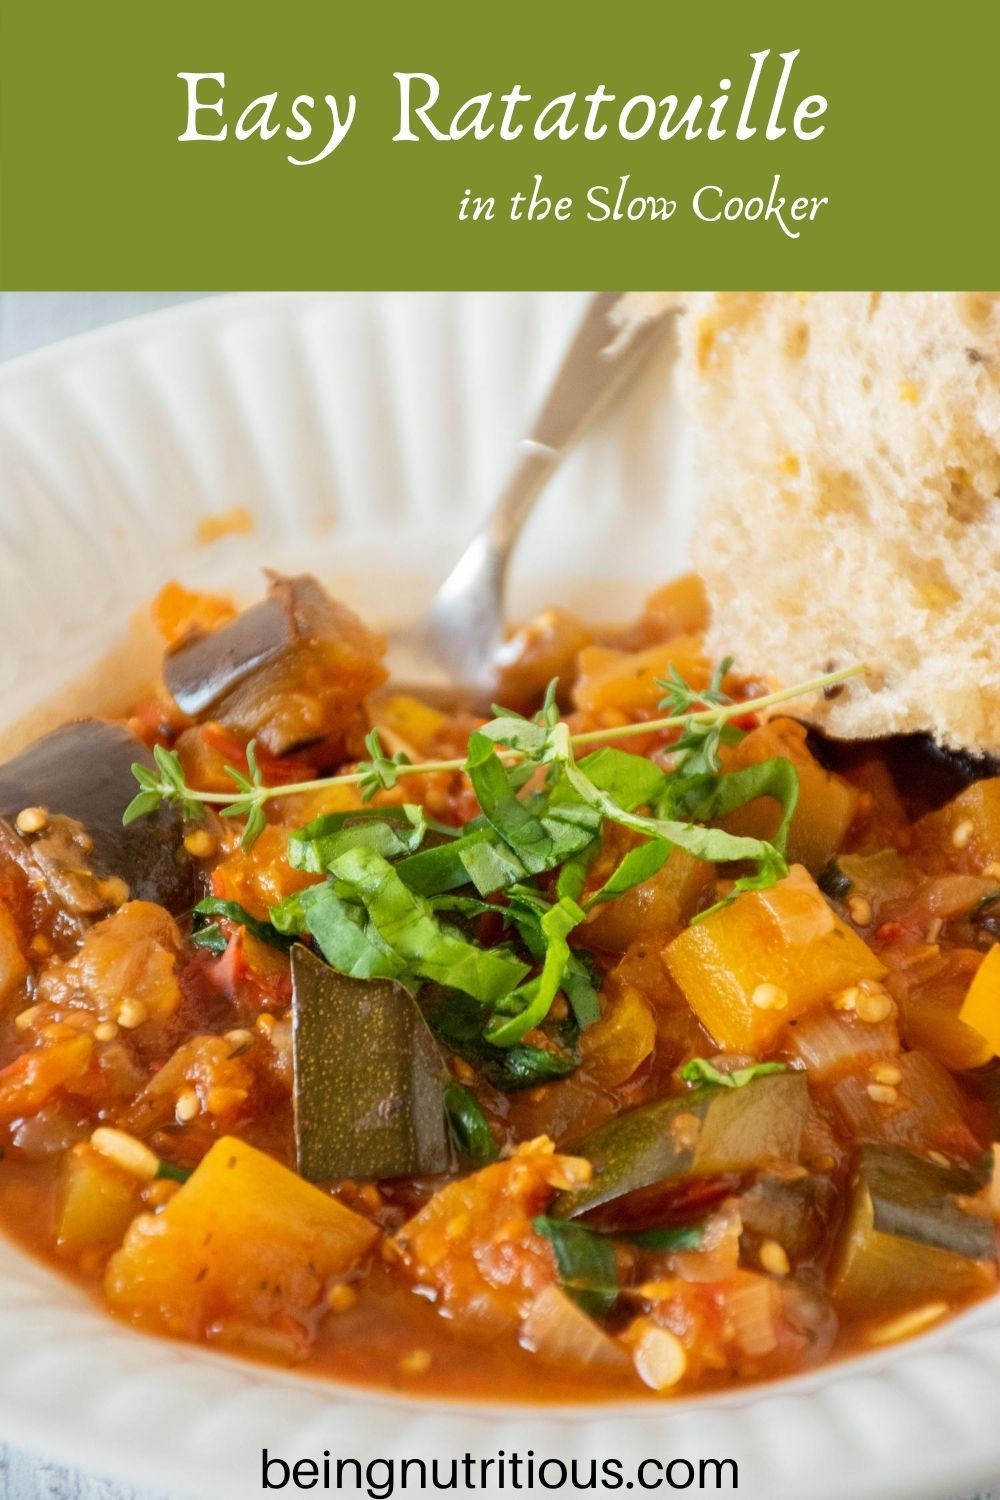 Close up of bowl of ratatouille. Text overlay in a green rectangle: Easy Ratatouille in the Slow Cooker.